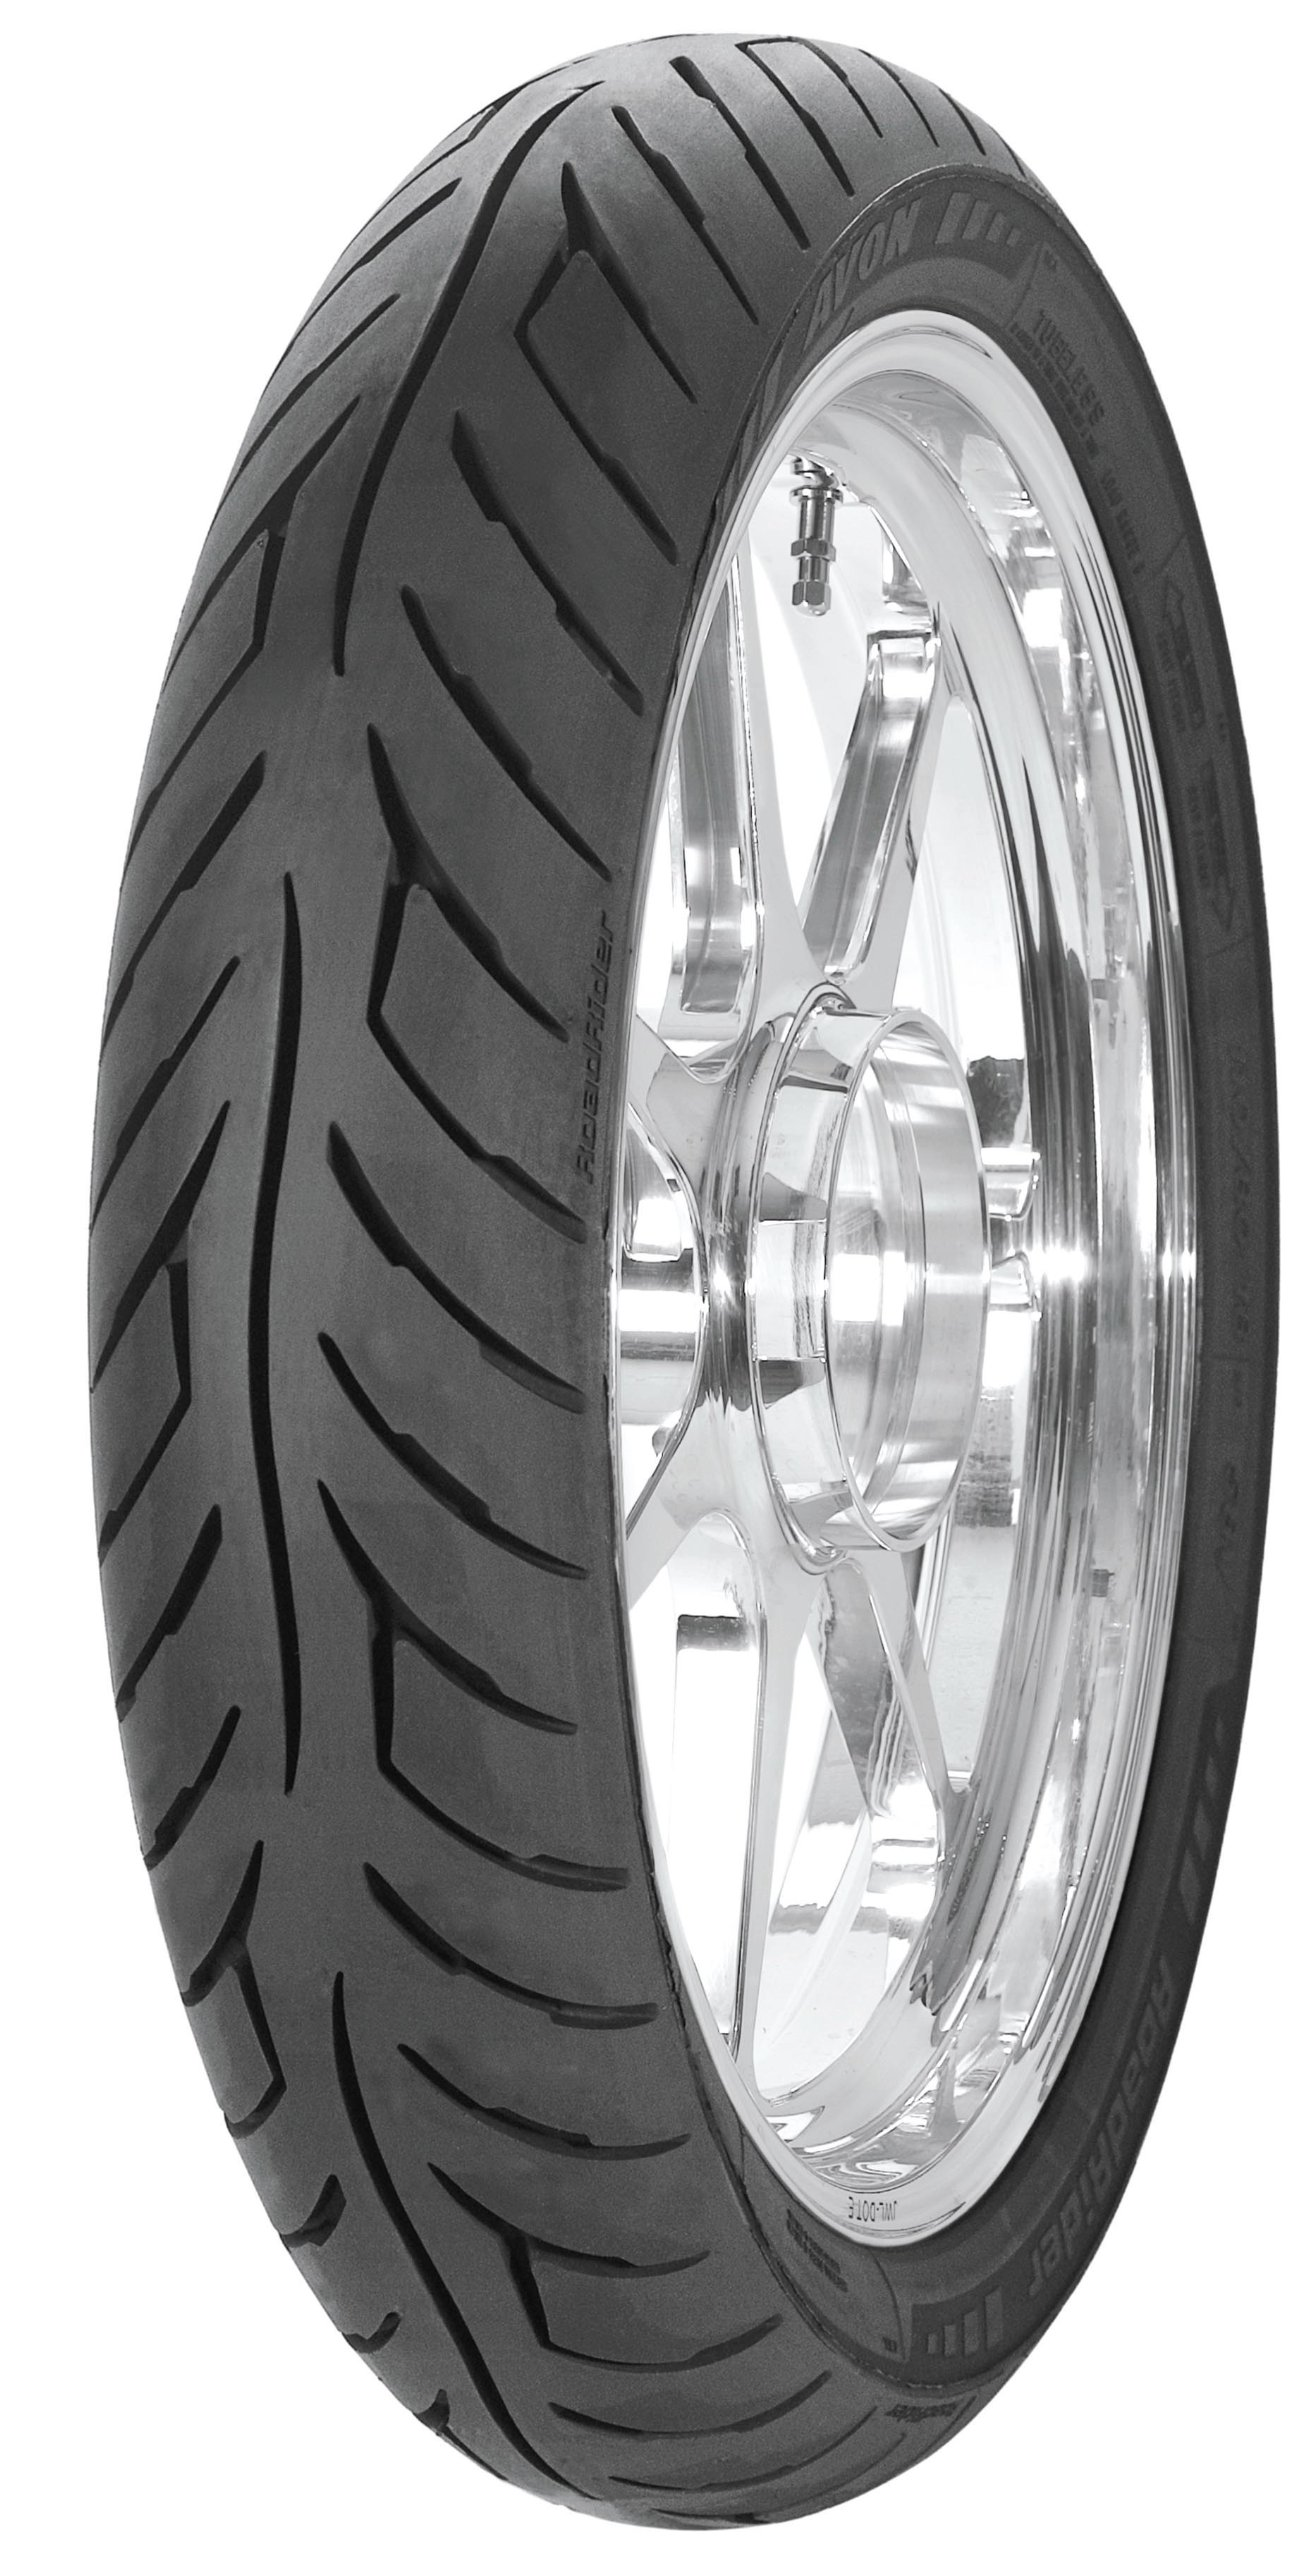 Motorcycle Tire Sizes >> Avon Roadrider AM26 Universal Classic/Vintage Motorcycle Tire -110/80-18